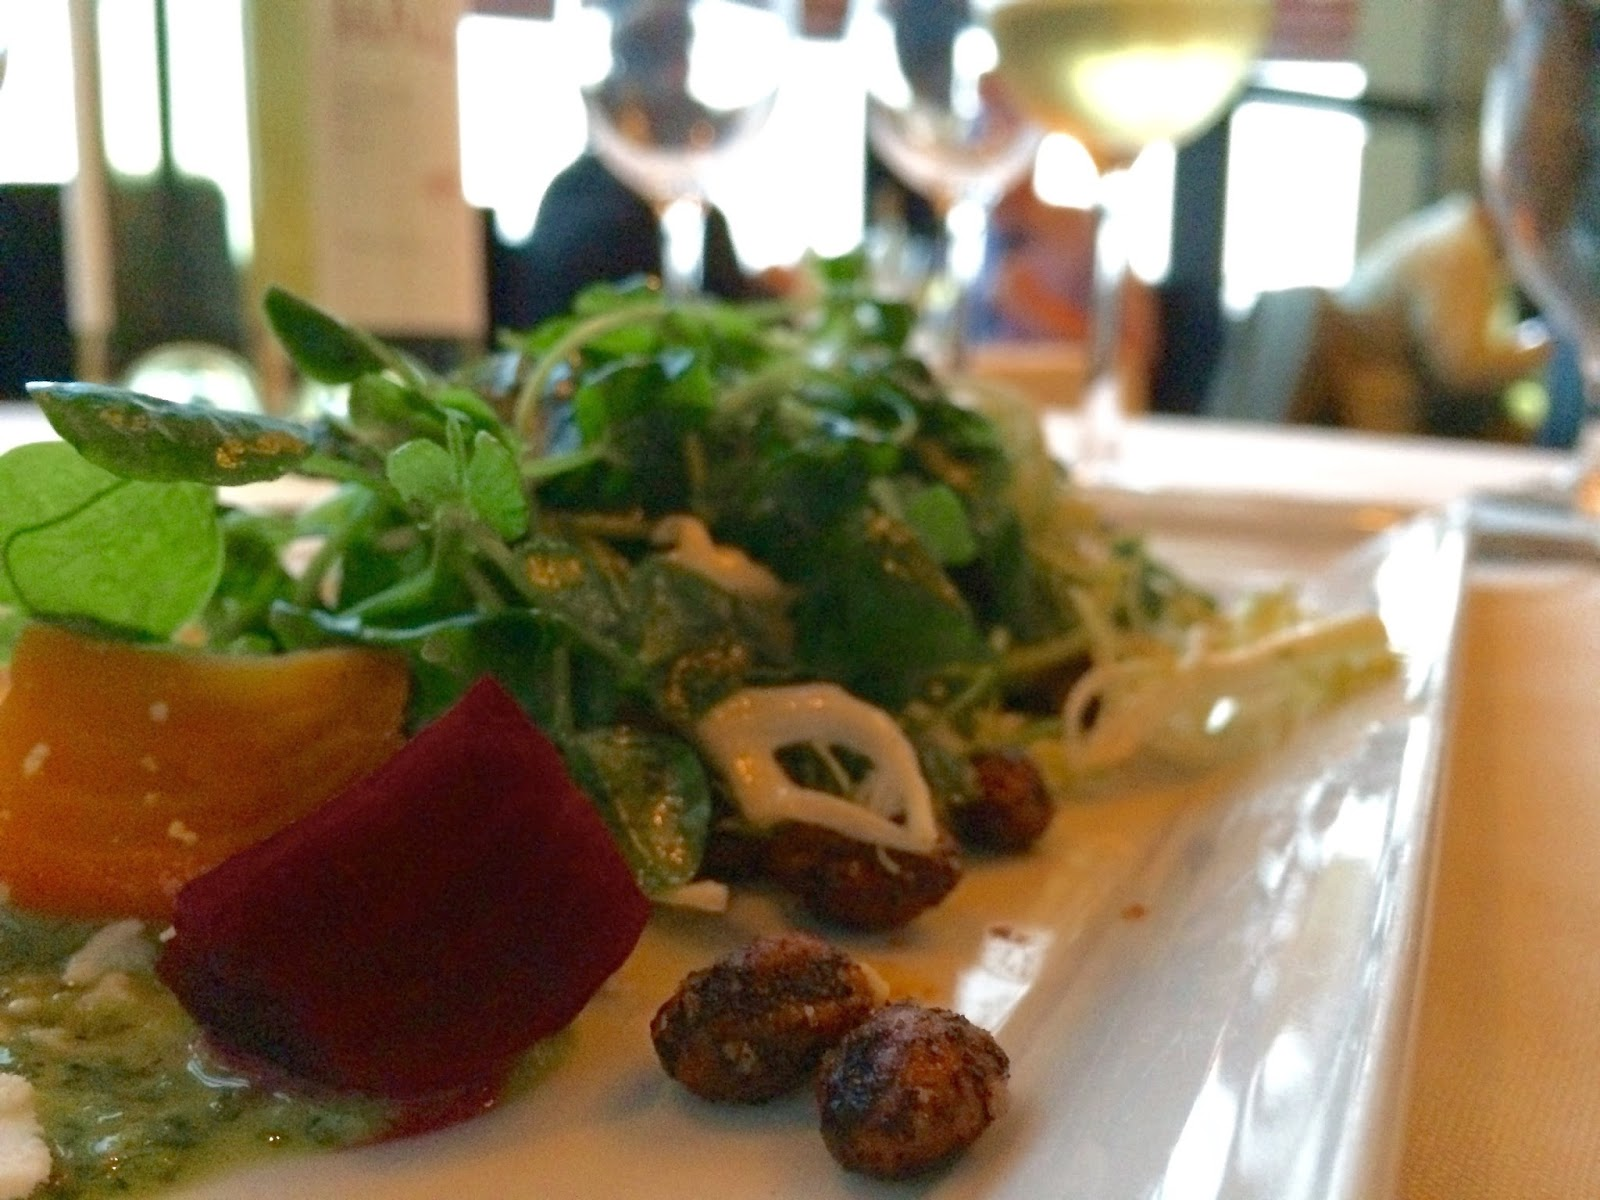 Baby Beet Salad with Frisée, Salata Ricotta, and Meyer Lemon Paired with the Walt La Brisa Sonoma Chardonnay 2012